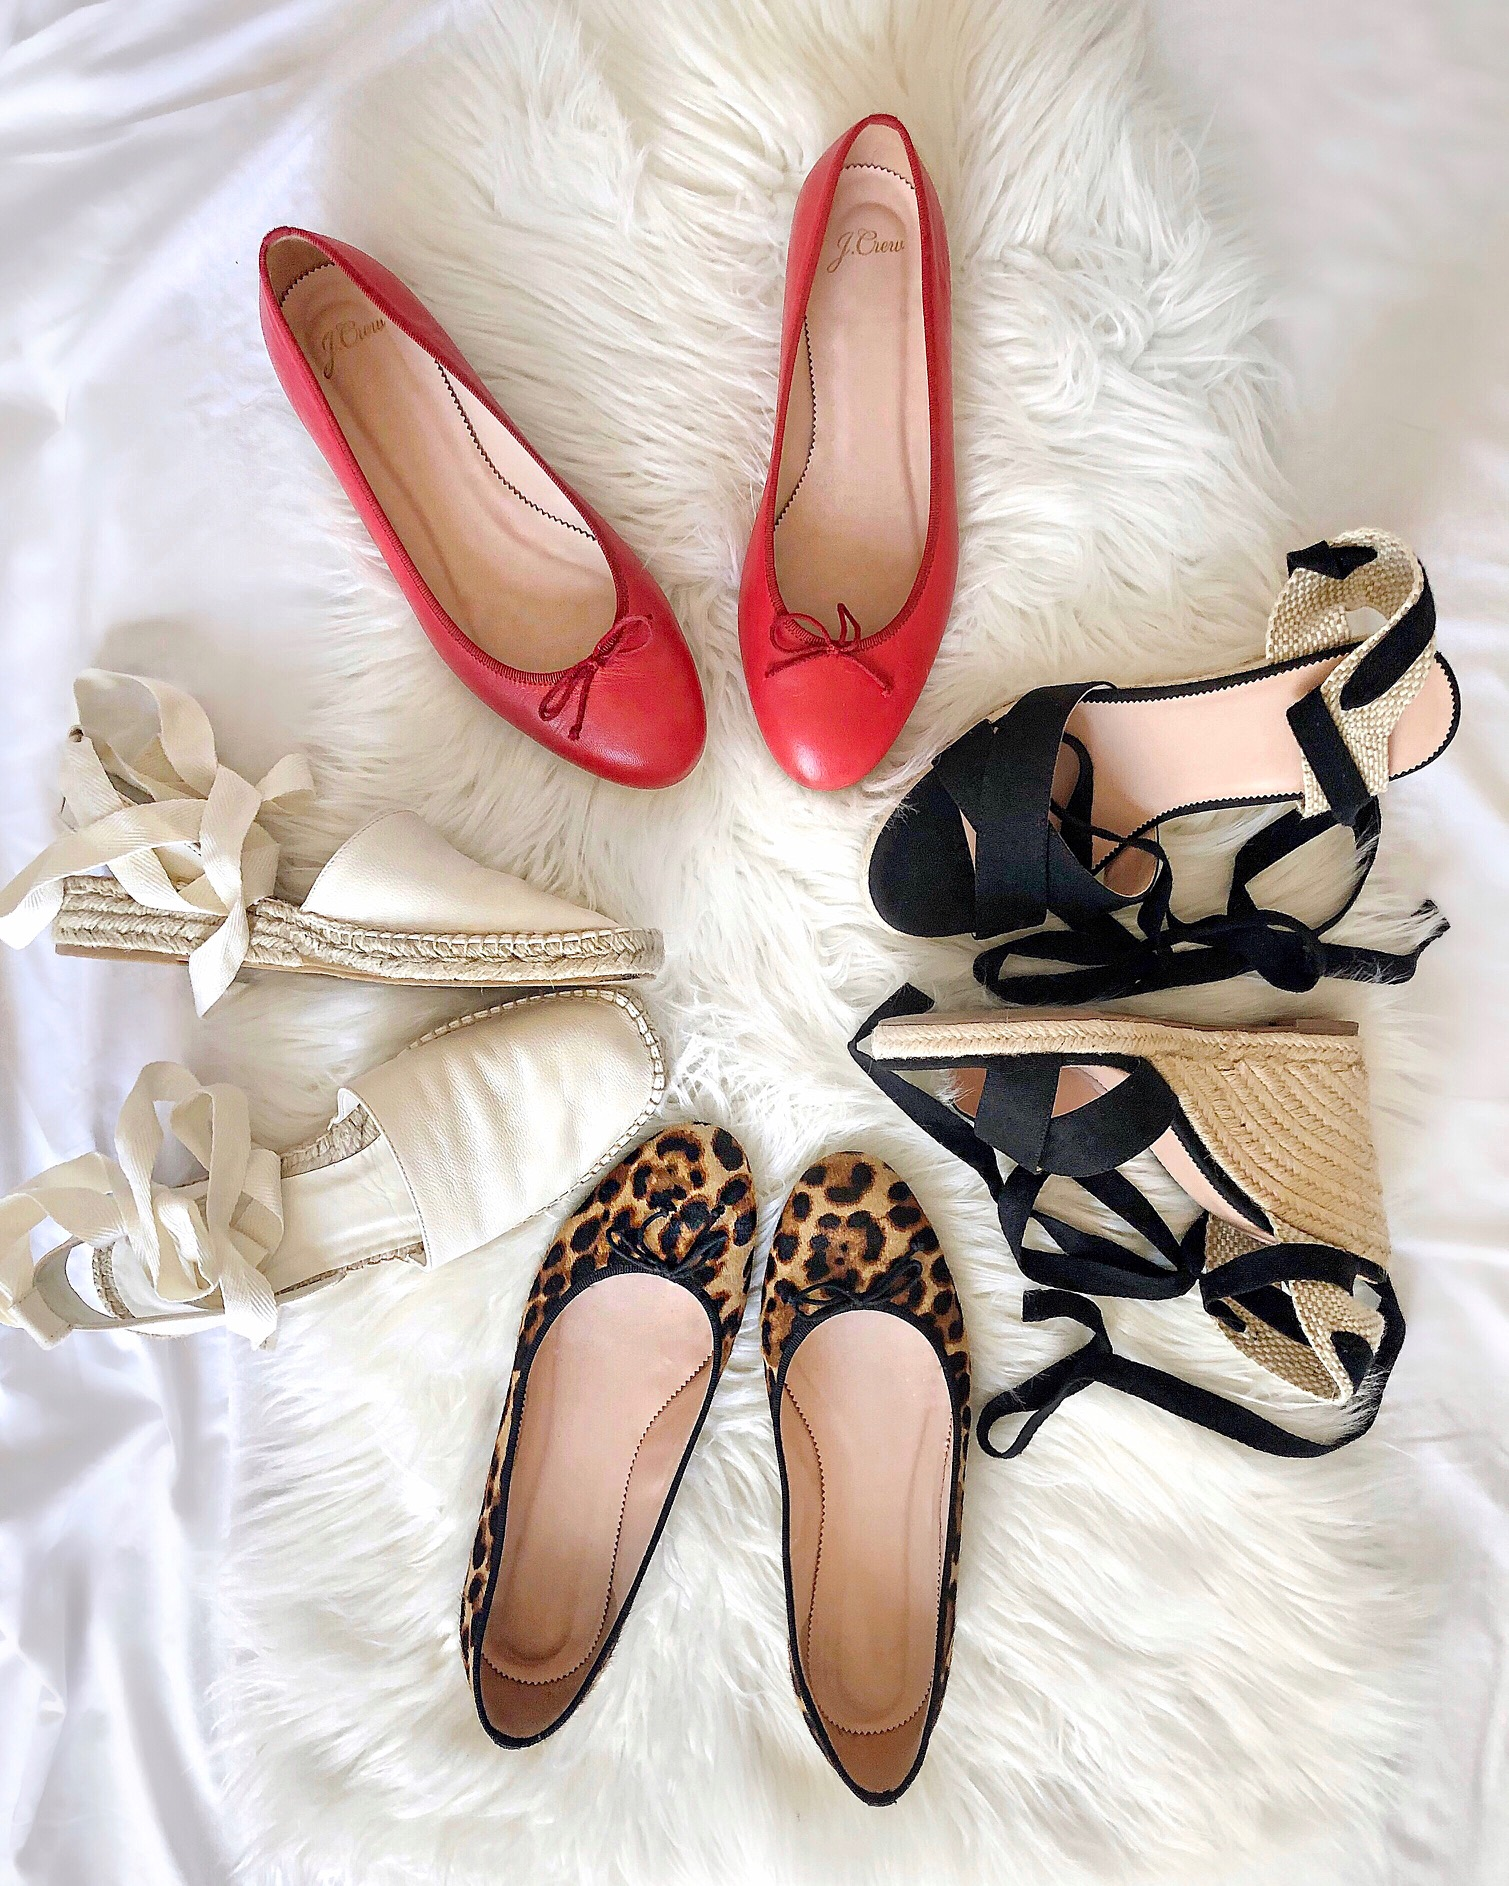 Favorite Summer Shoes Roundup!